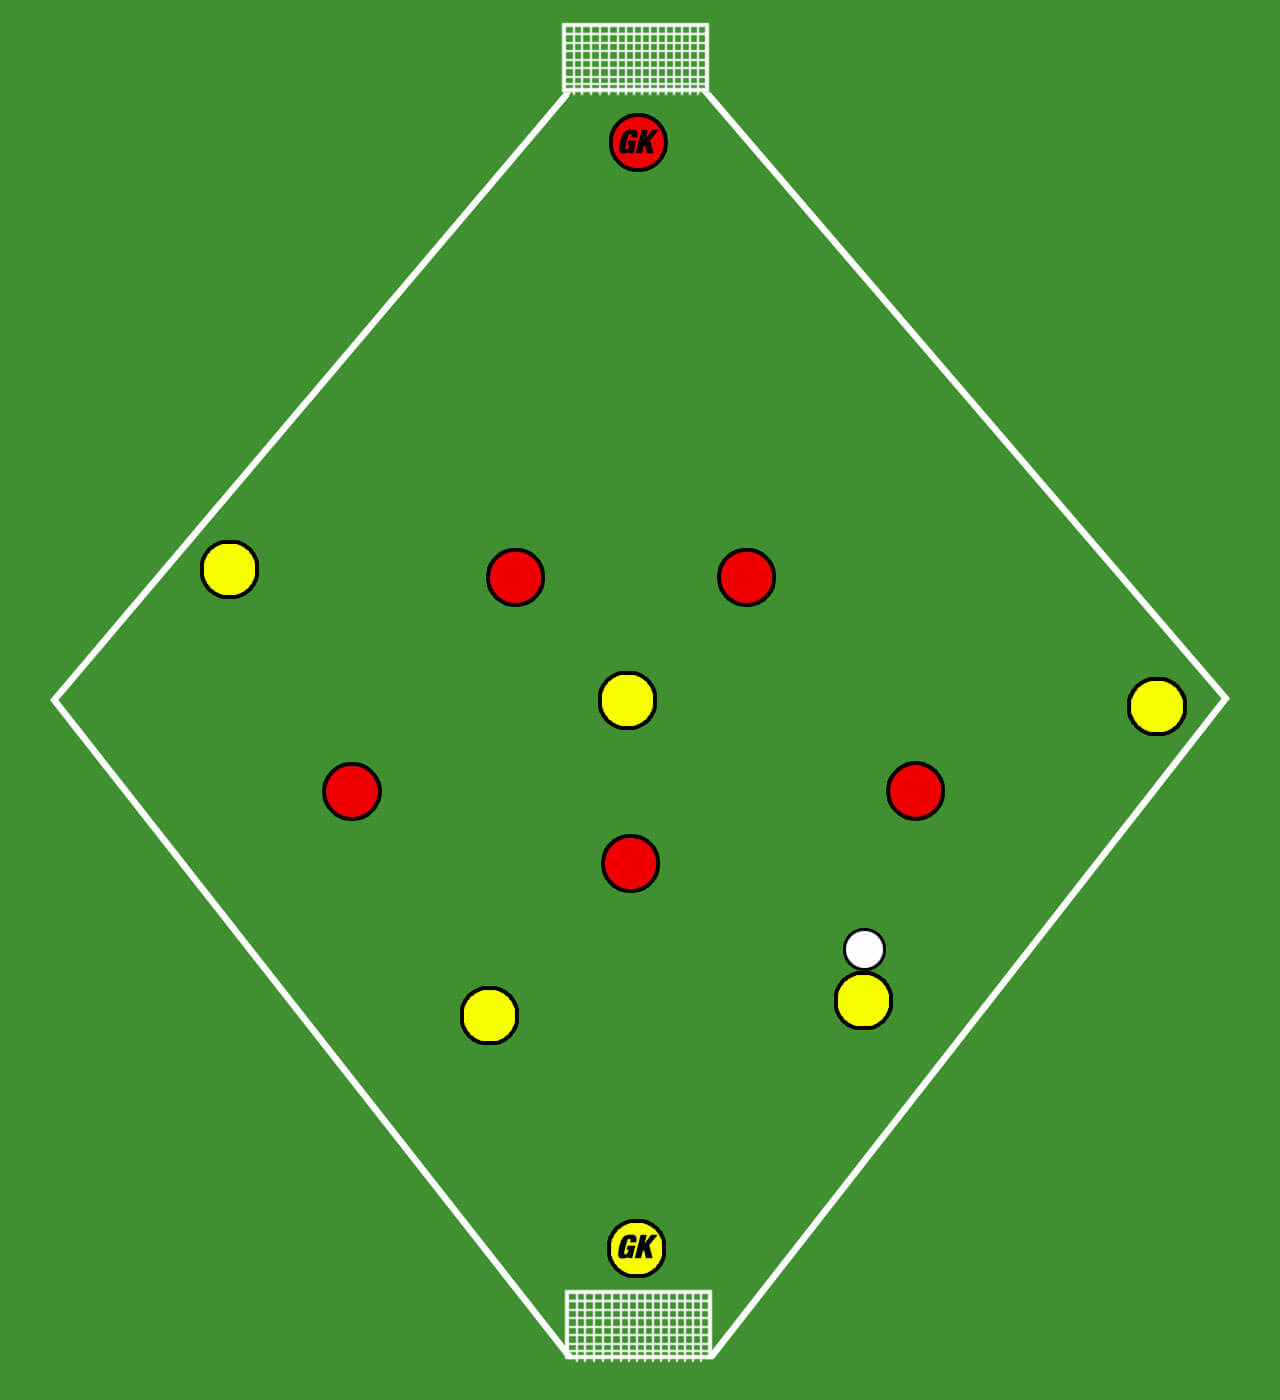 Coaching: The usage of different pitch shapes in football training tactics